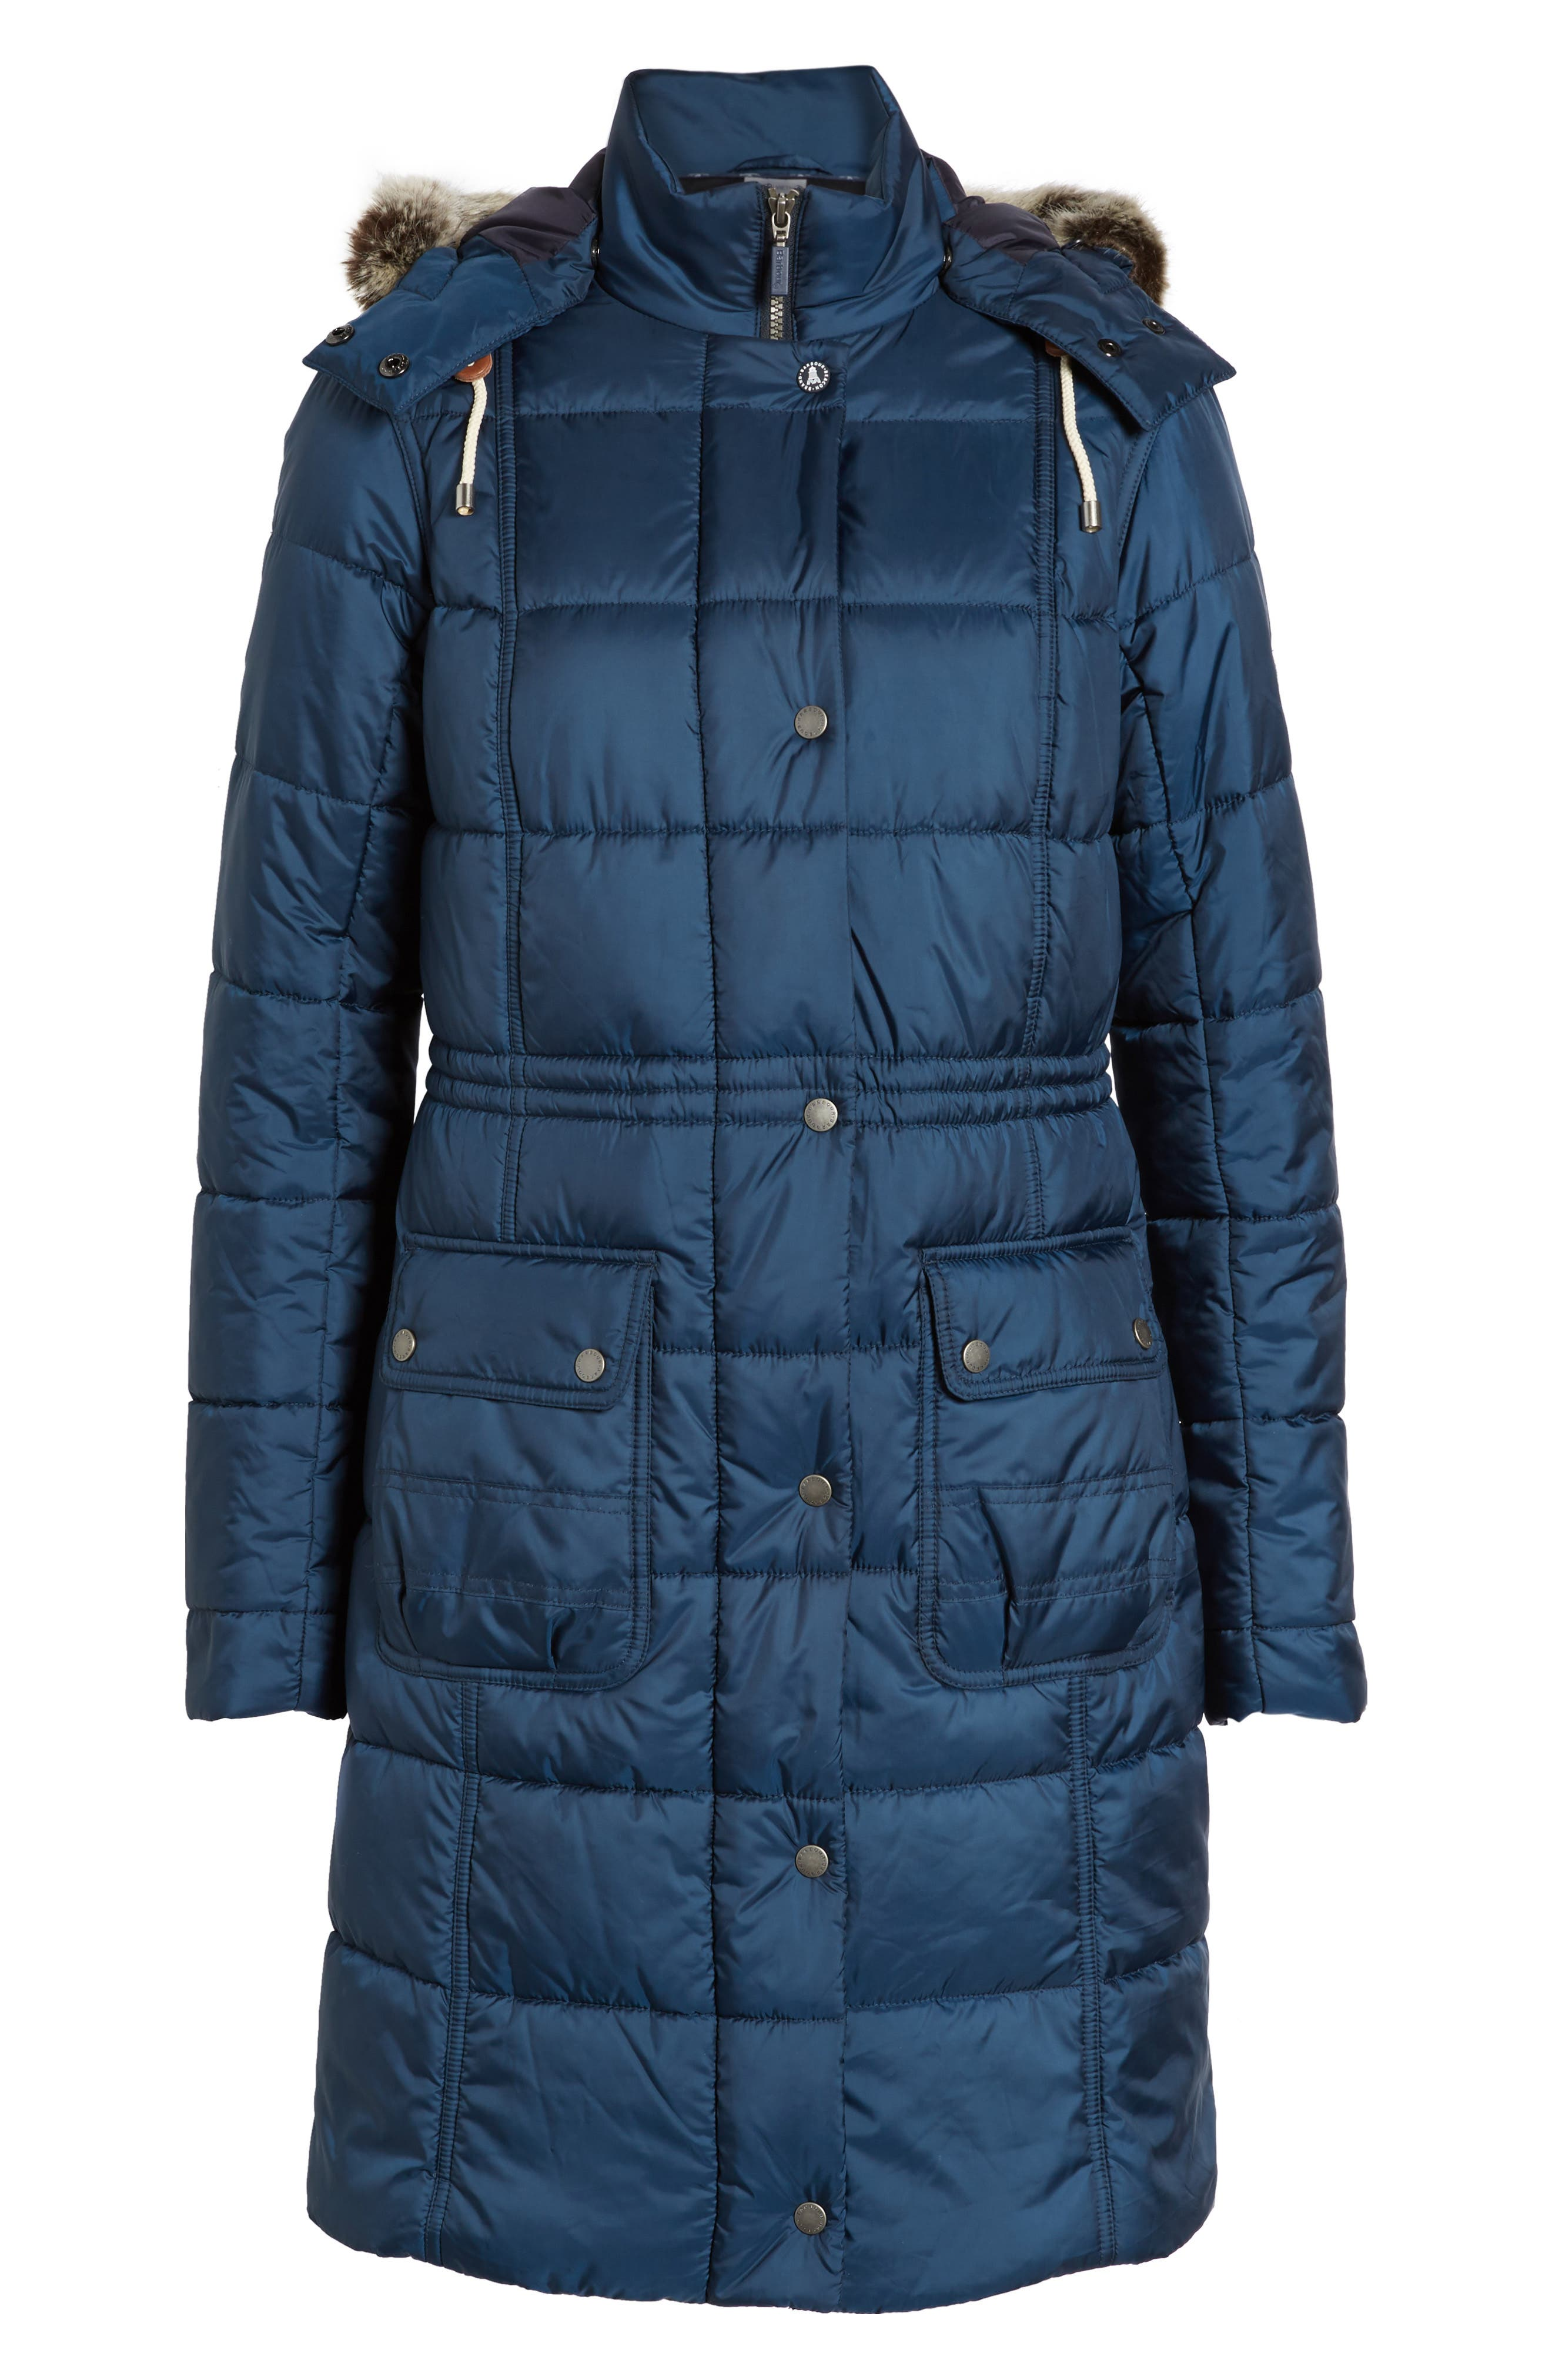 Winterton Water Resistant Hooded Quilted Jacket with Faux Fur Trim,                             Alternate thumbnail 6, color,                             French Navy